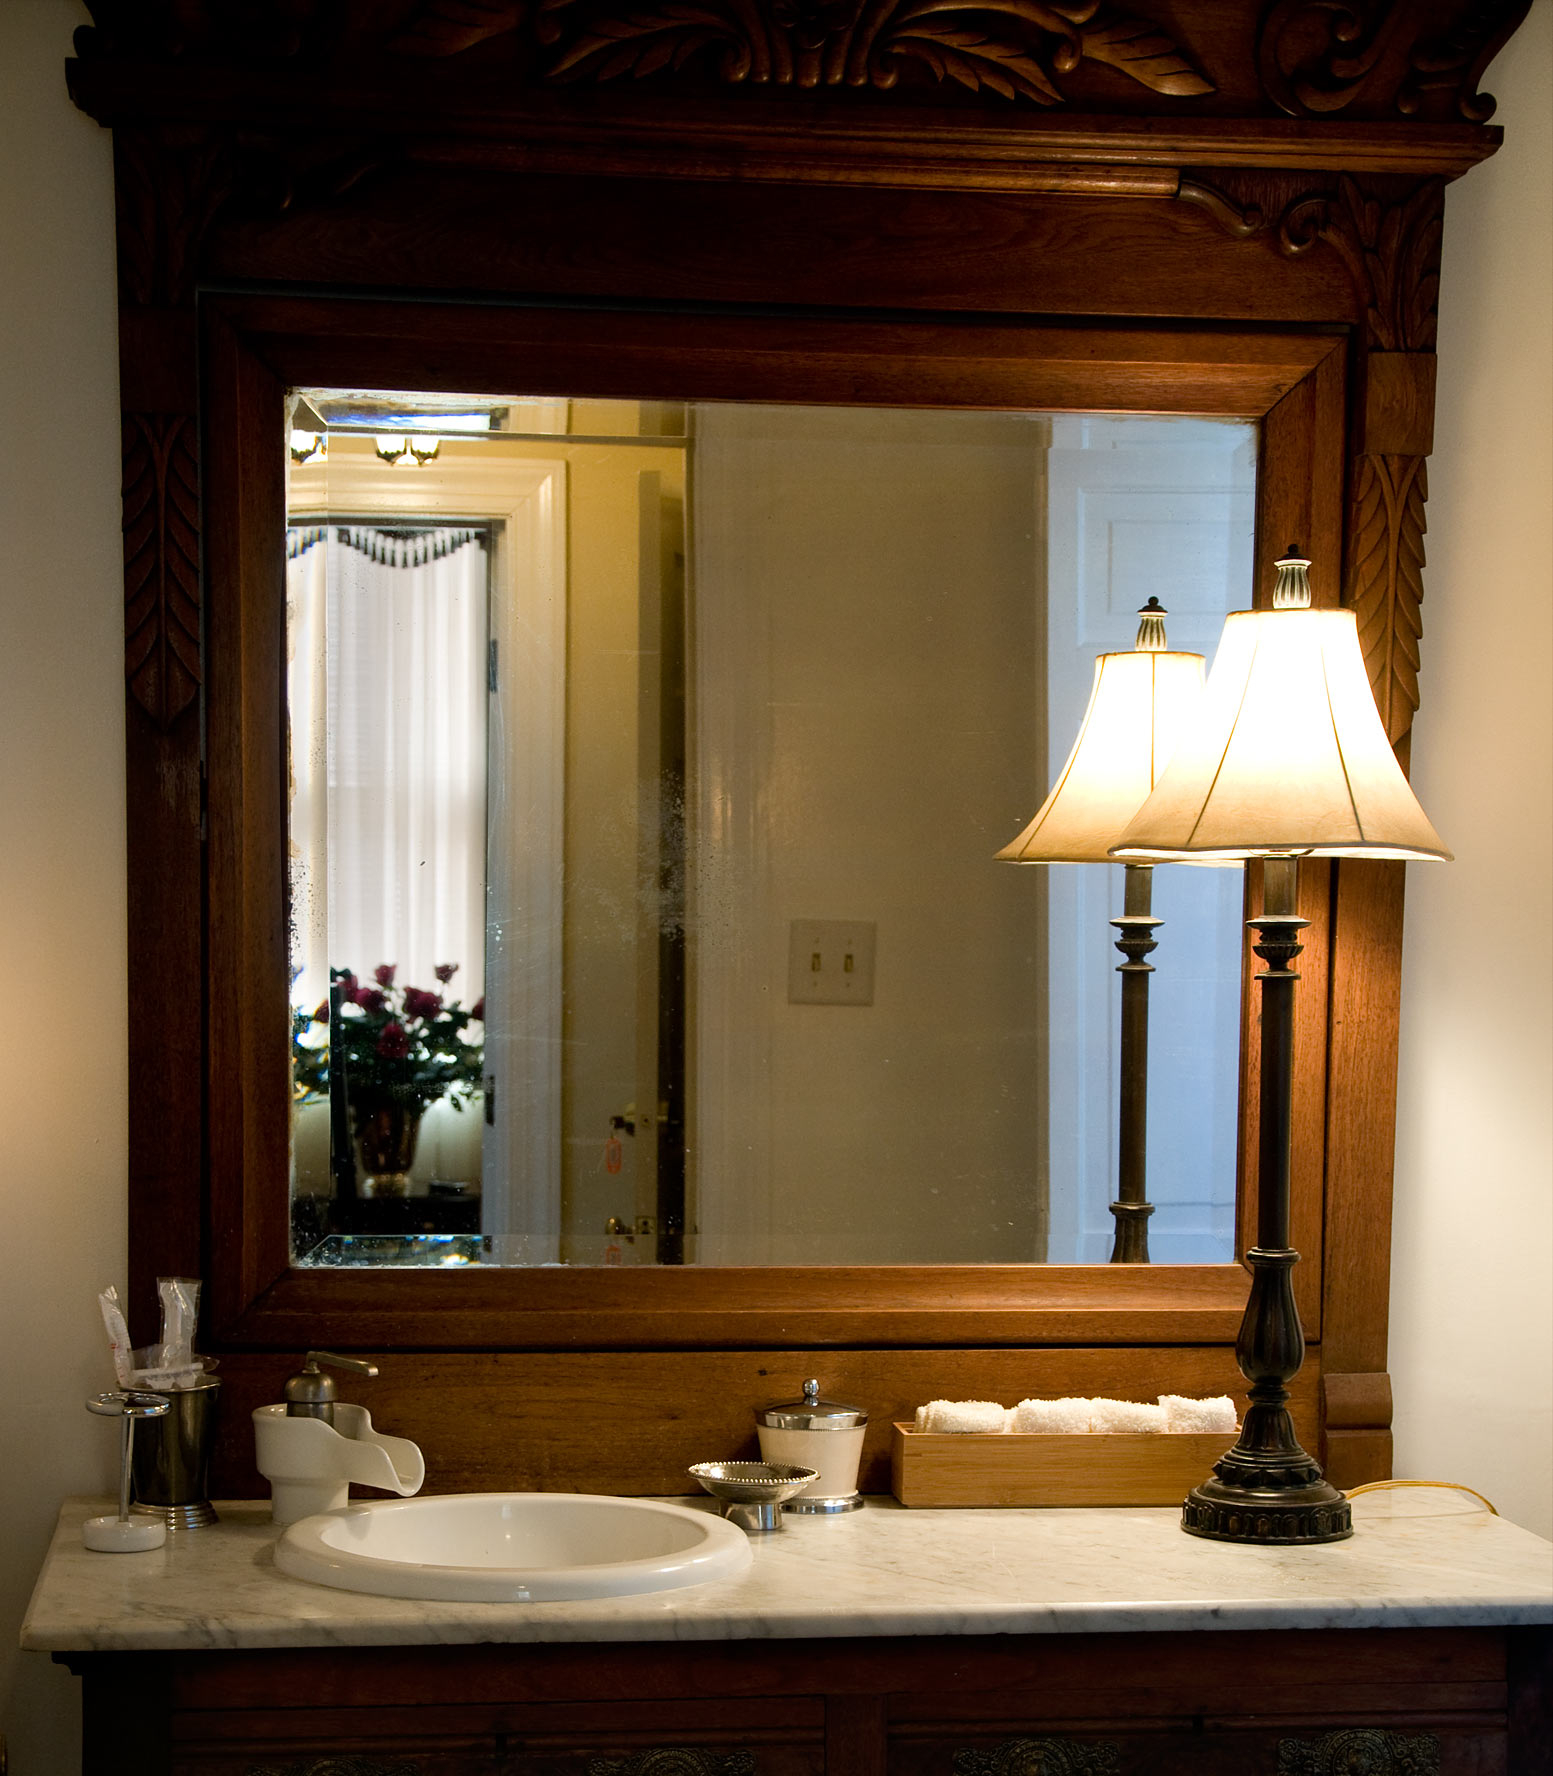 Featured Image of Traditional Bathroom Mirror With Wooden Frame And Stand Lamp